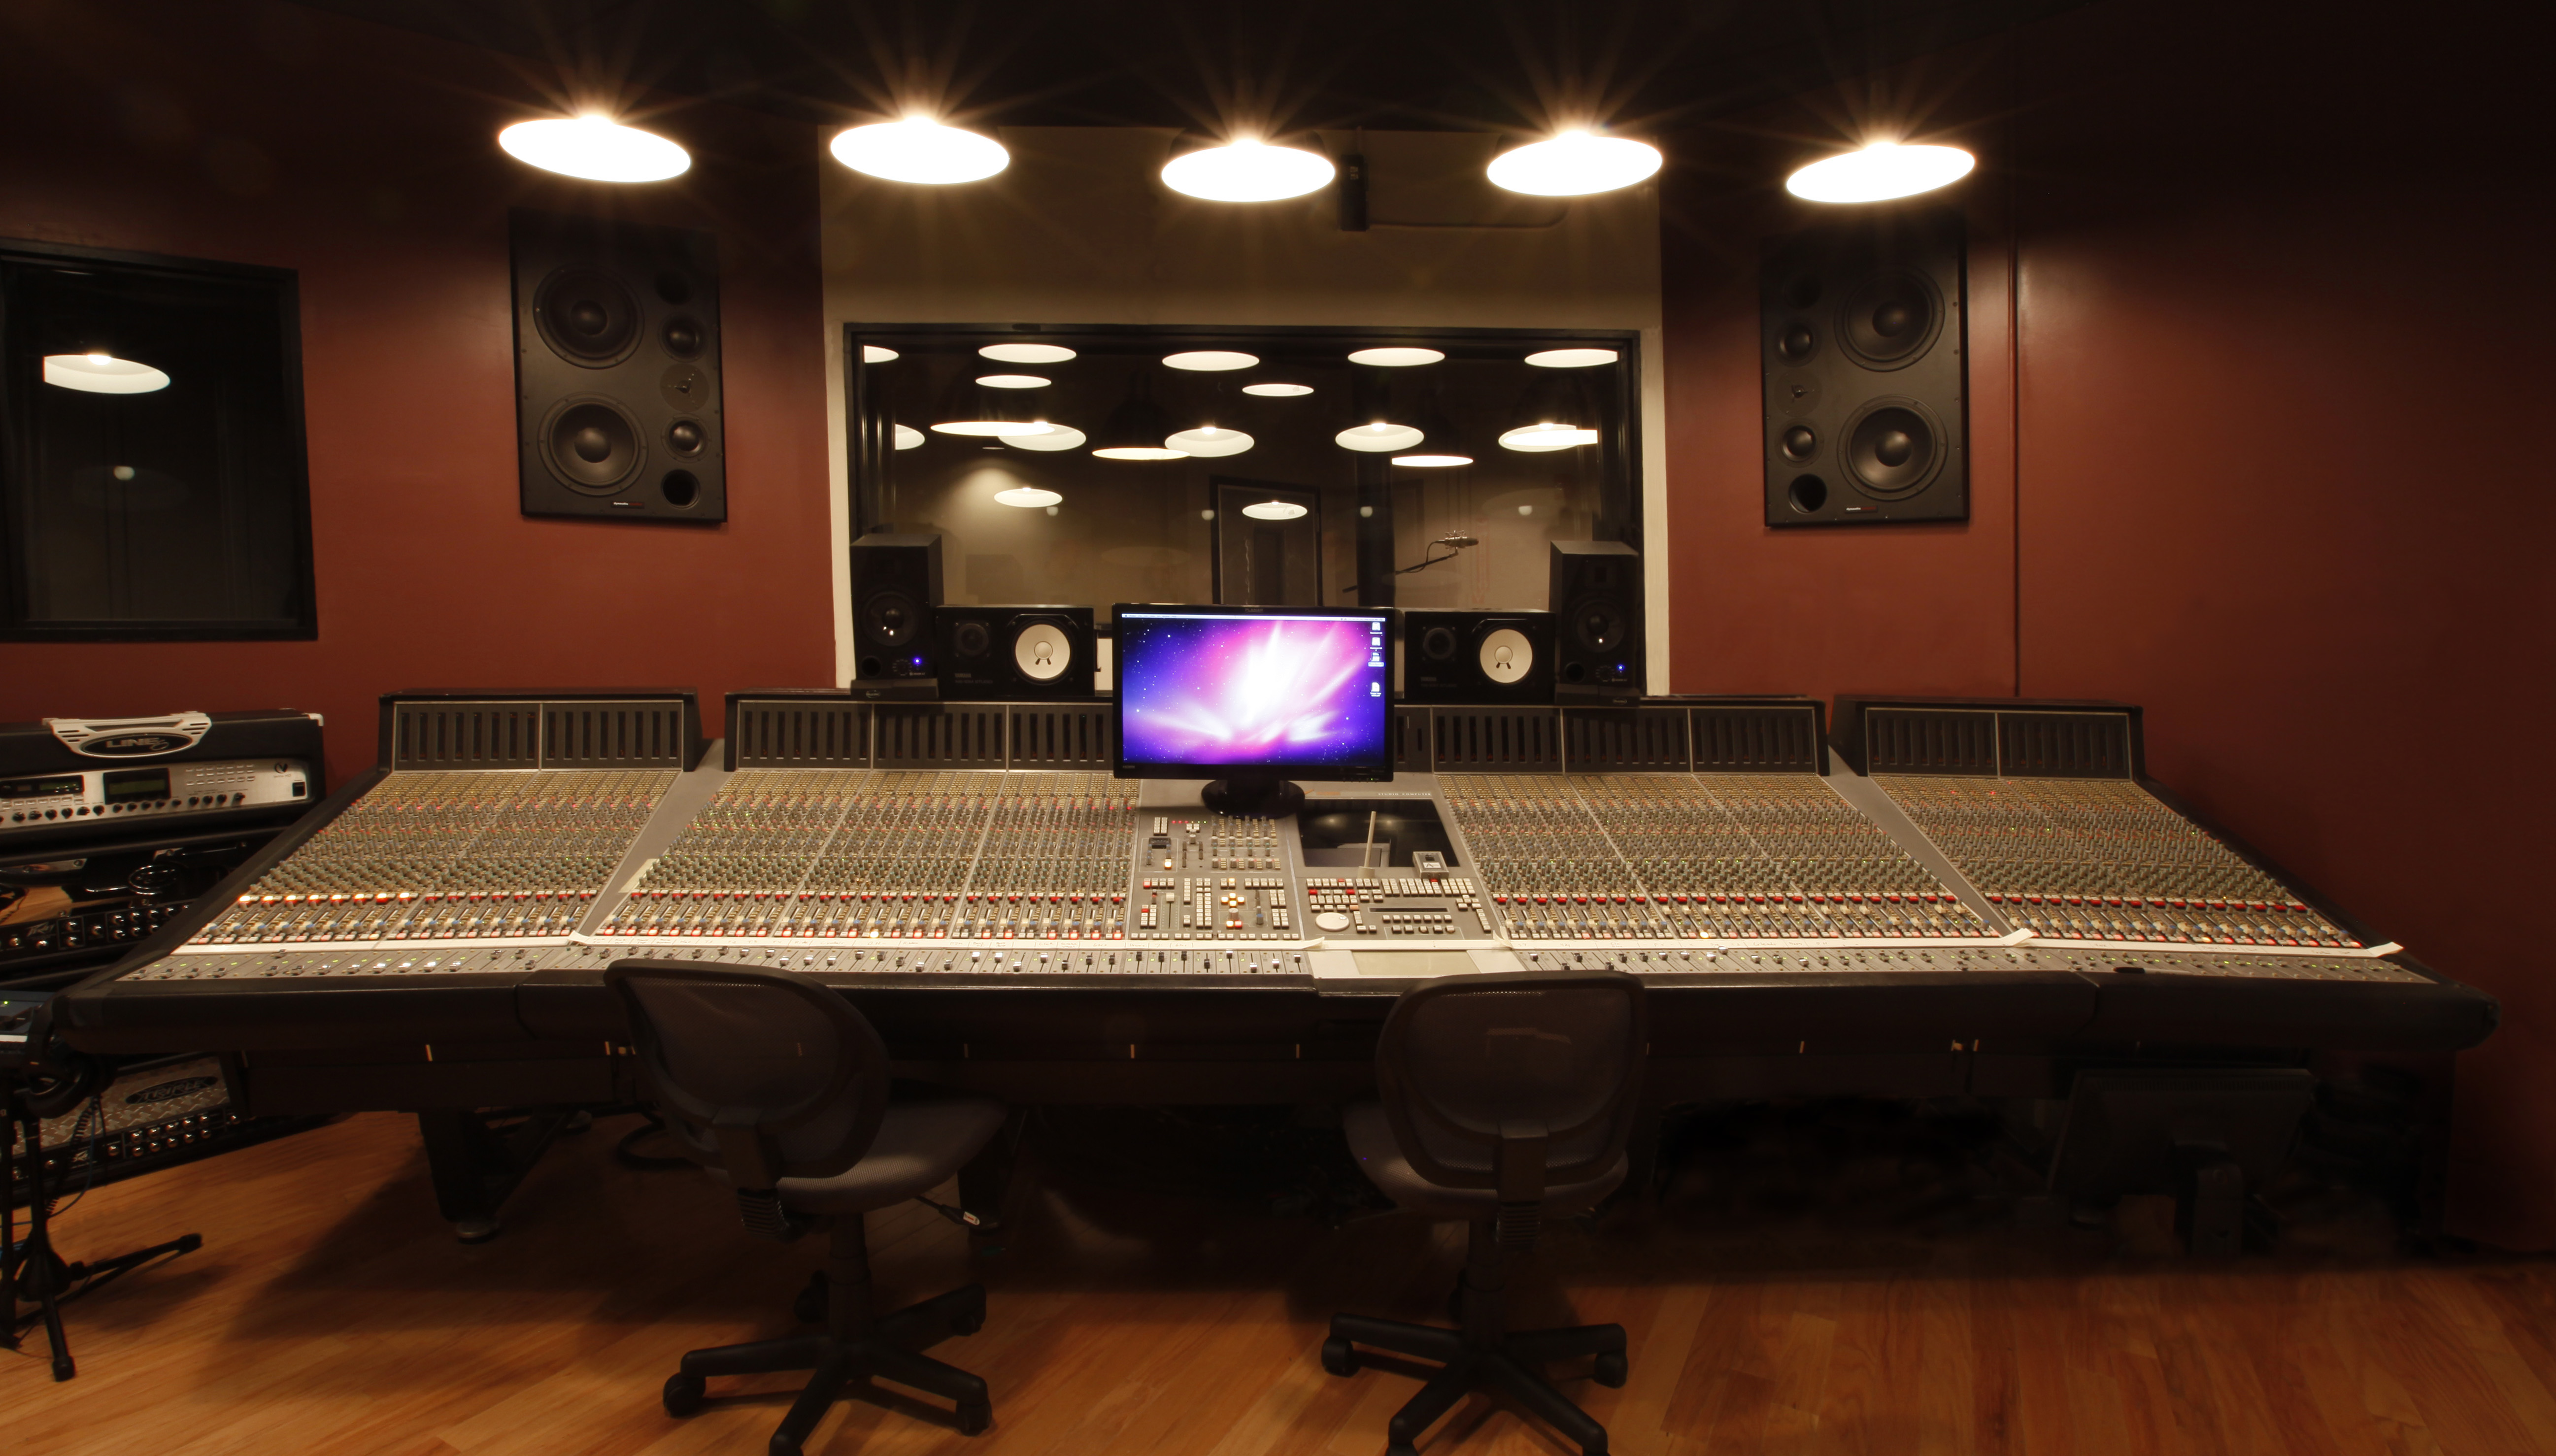 Architekt Music is an all encompassing music facility located at One 5188x2956